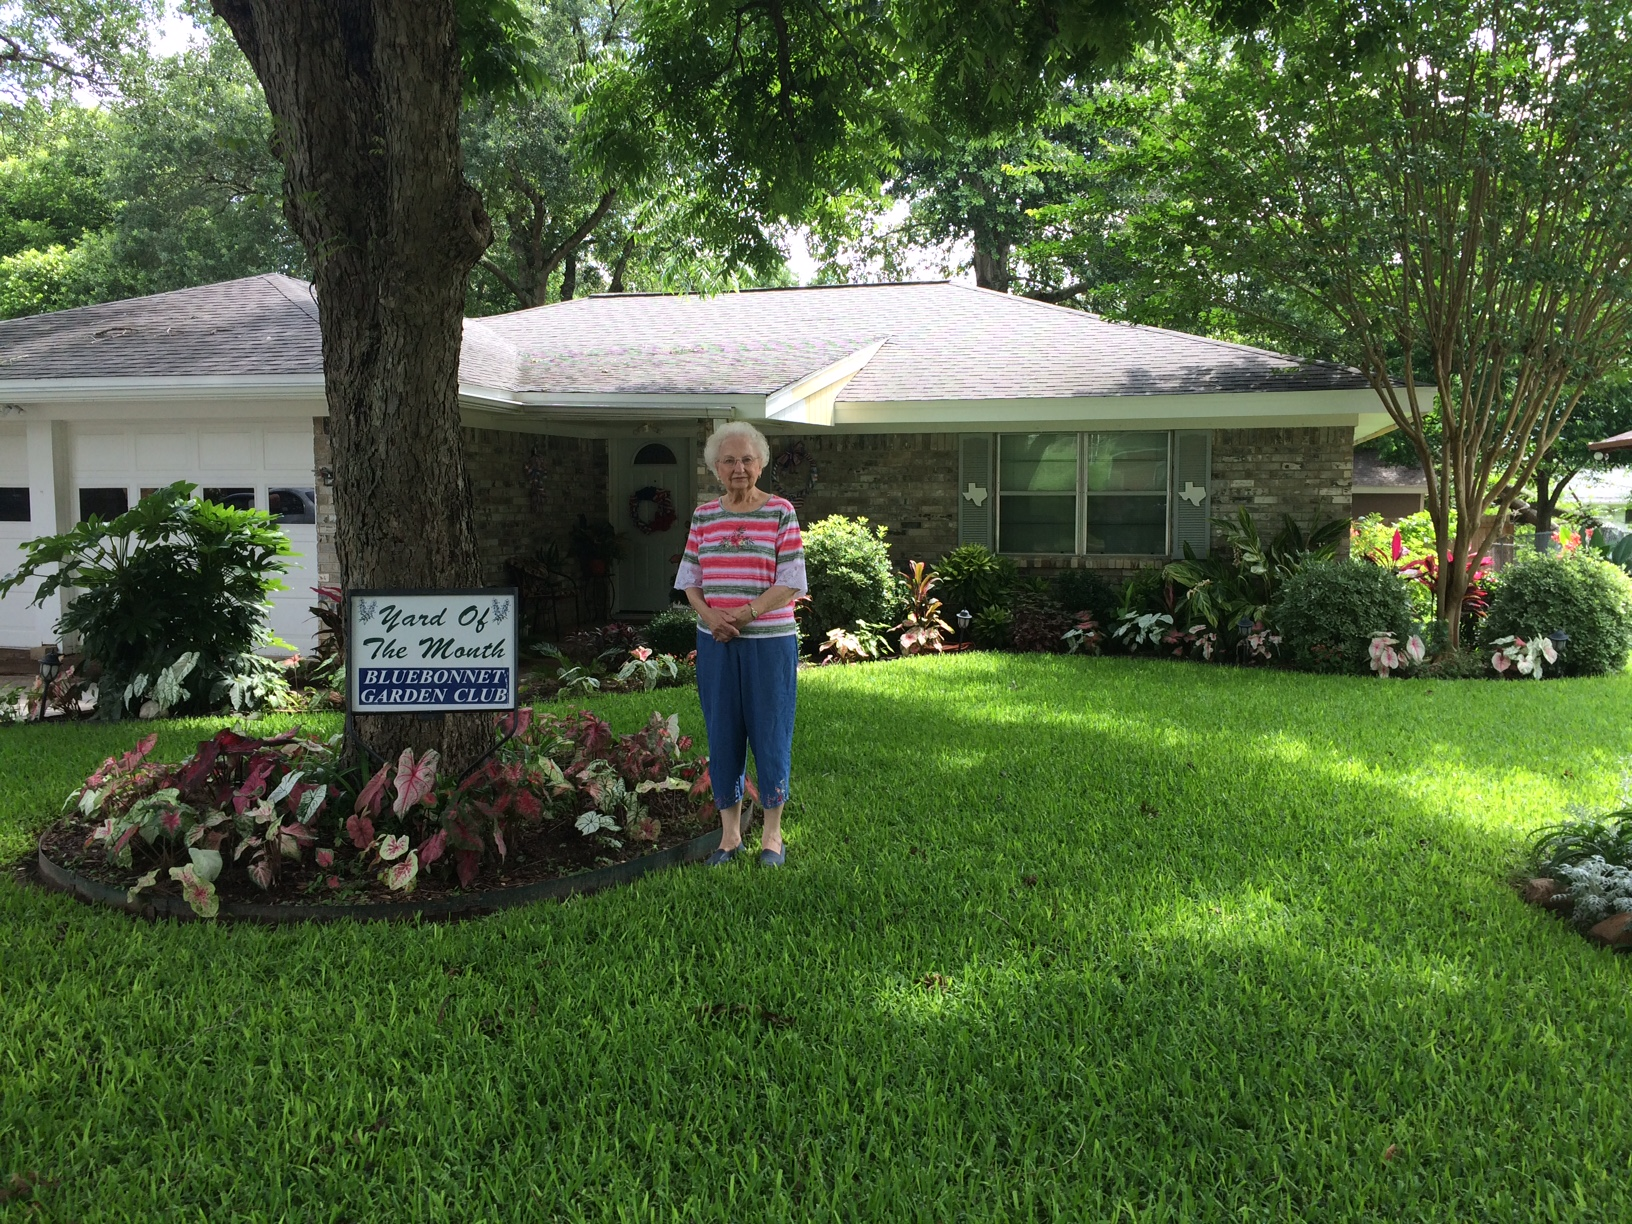 The June Yard of the Month award has been given to Darlene Blondeau at 1307 Tom Dee Street by Bluebonnet Garden Club. The yard is beautifully landscaped with numerous plants of red and white caladiums surrounding trees and outlining a front flowerbed. Among other plants are variegated pittosporum, loropetalum, foxtail fern, boxwood, Indian Hawthorn, begonias, a crepe myrtle and dusty Miller. Large gold dust and Hawaiian Ti Red Sister plants give added color to the garden. A large cluster of ginger at the edge of the house adds height and texture. Around the side of the house are yellow bells, coral cannas and roses. This yard is shaded by a large pecan tree as well as a live oak. The yard is well tended and loved by the owner and her relative Nathan Steen. The various colors, shapes, sizes and textures of the many plants work together to make this yard very pleasing to the eye.